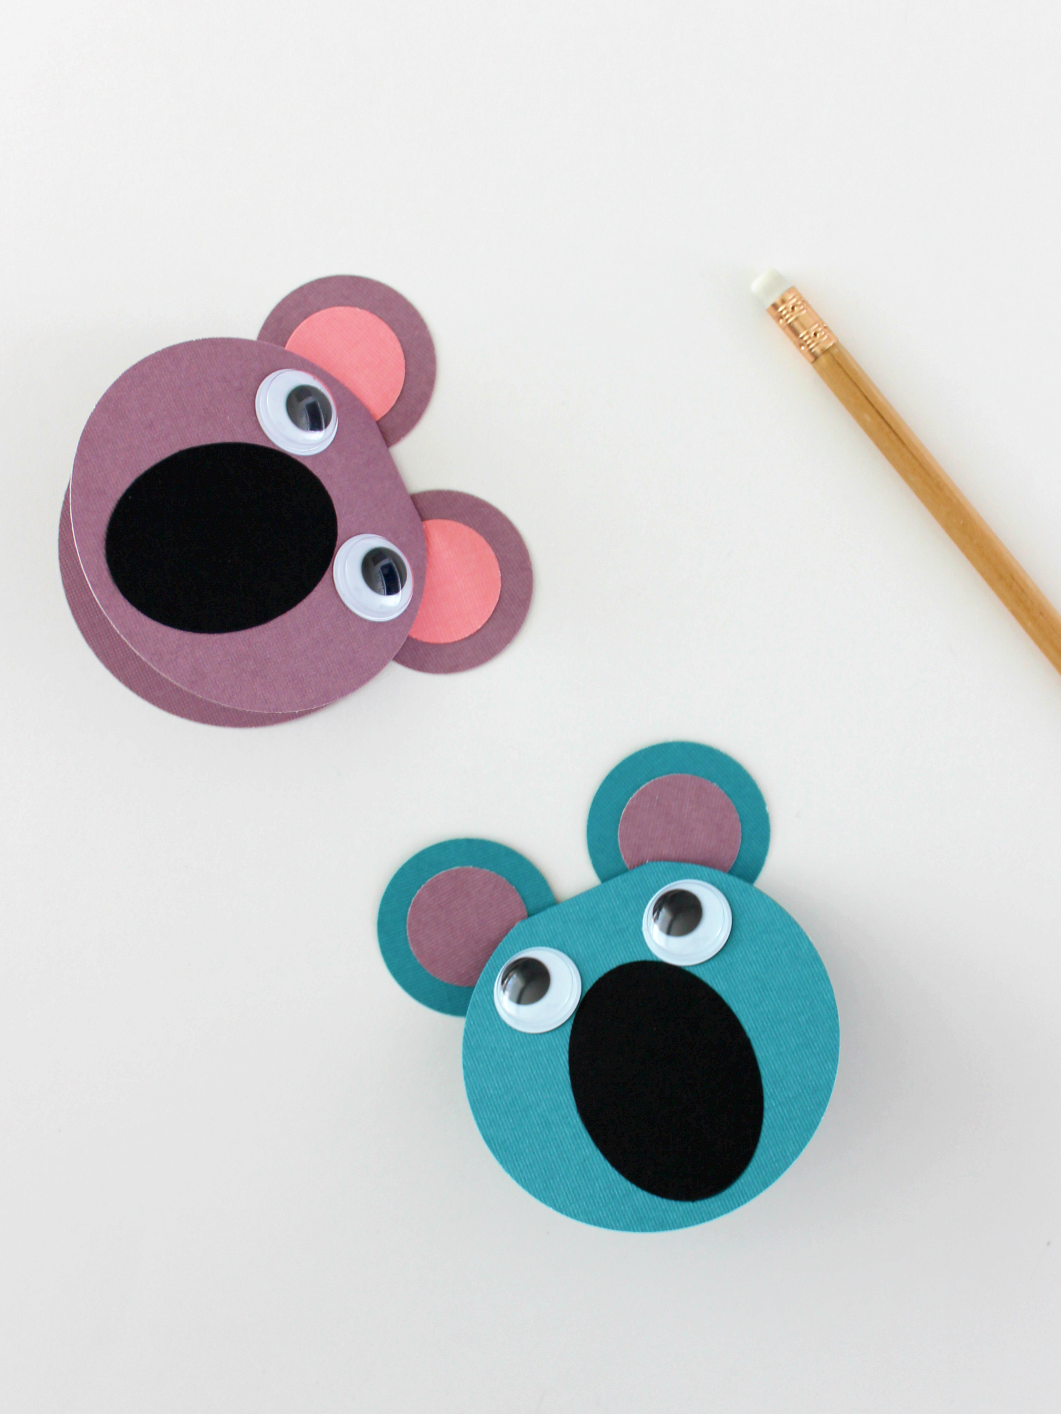 MAY PAPER CRAFT CHALLENGE DAY 22: DADDY KOALA CARD